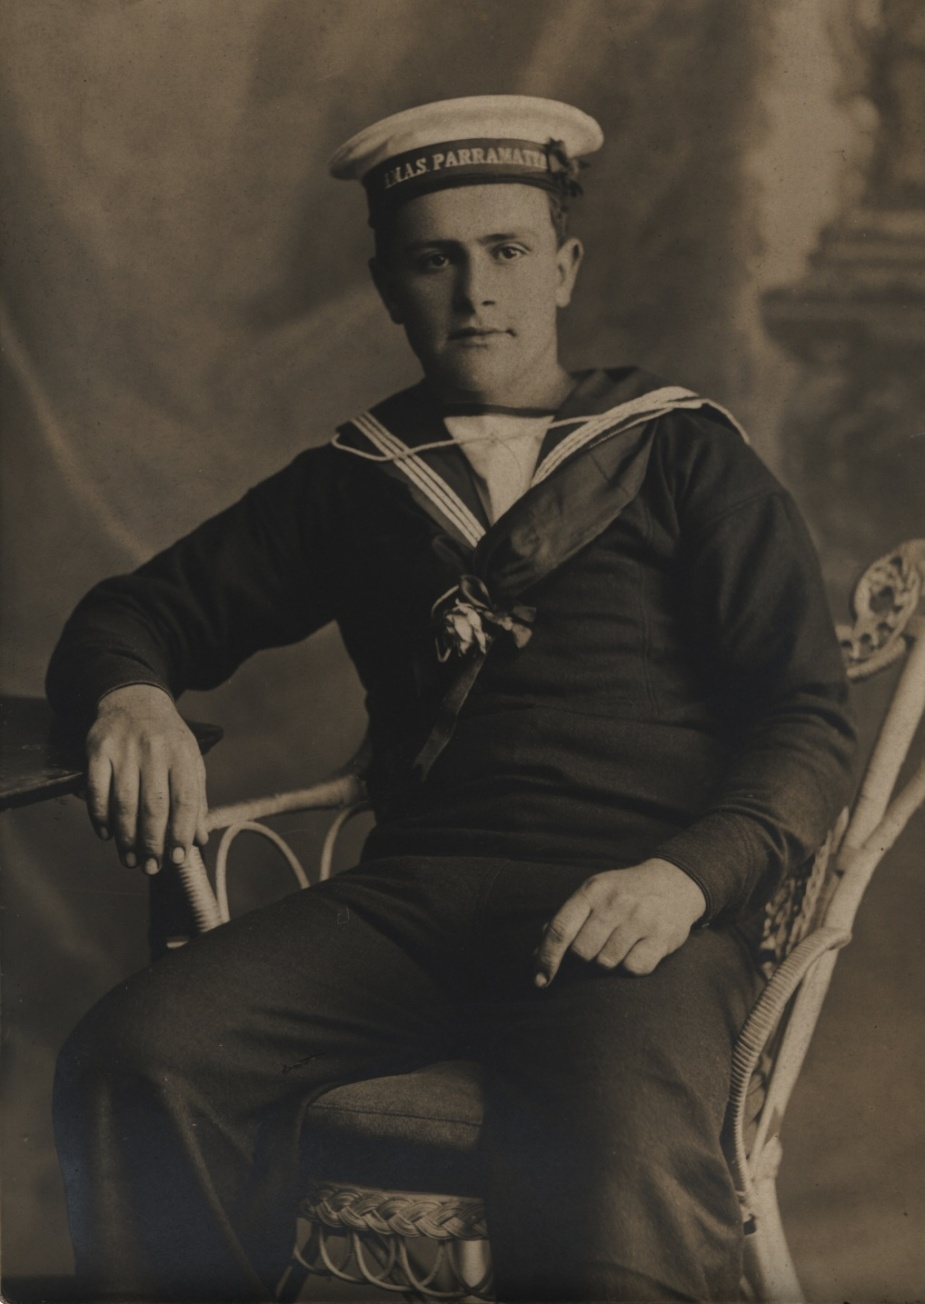 A seaman of HMAS Parramatta poses proudly in his uniform with cap ribbon clearly visible.